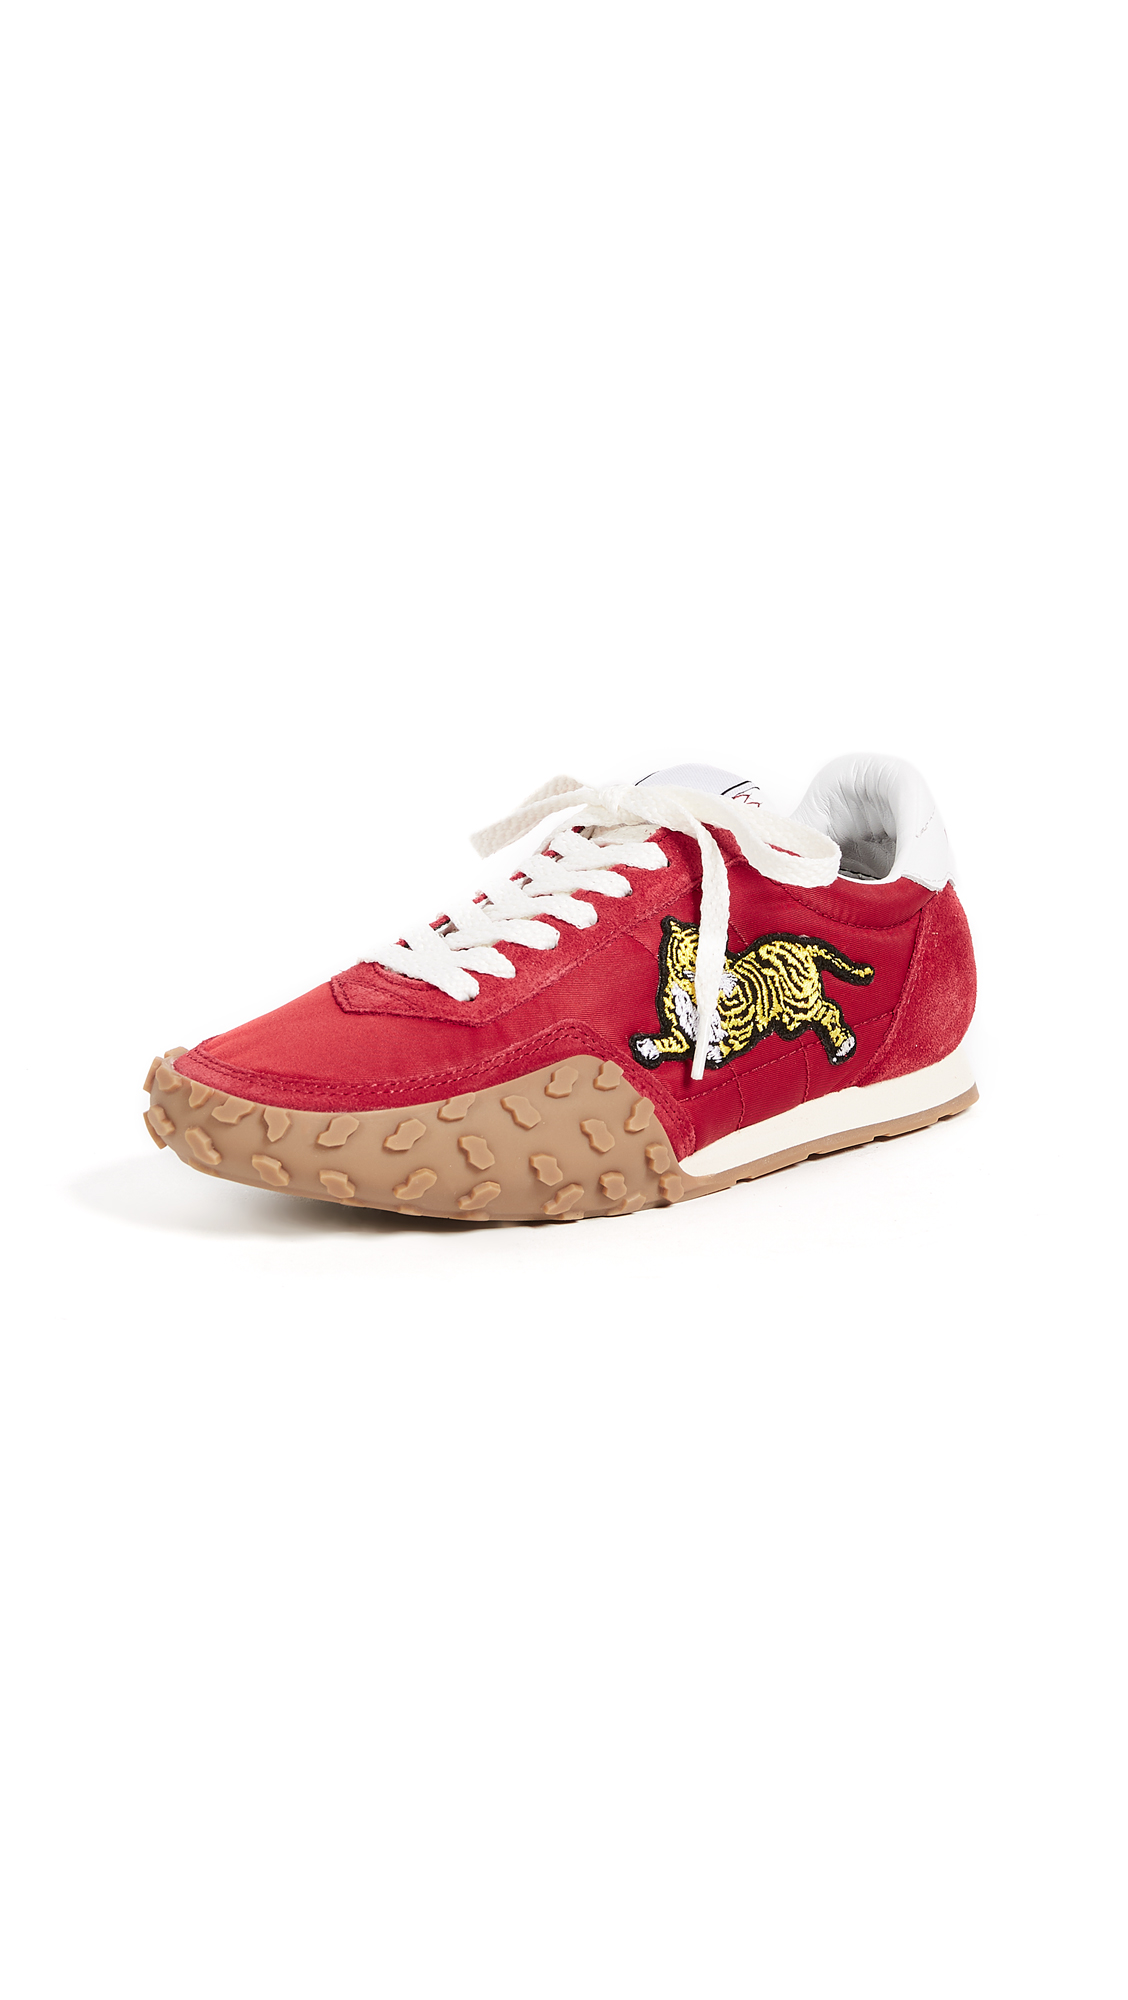 KENZO K-Run Memento Sneakers - Medium Red